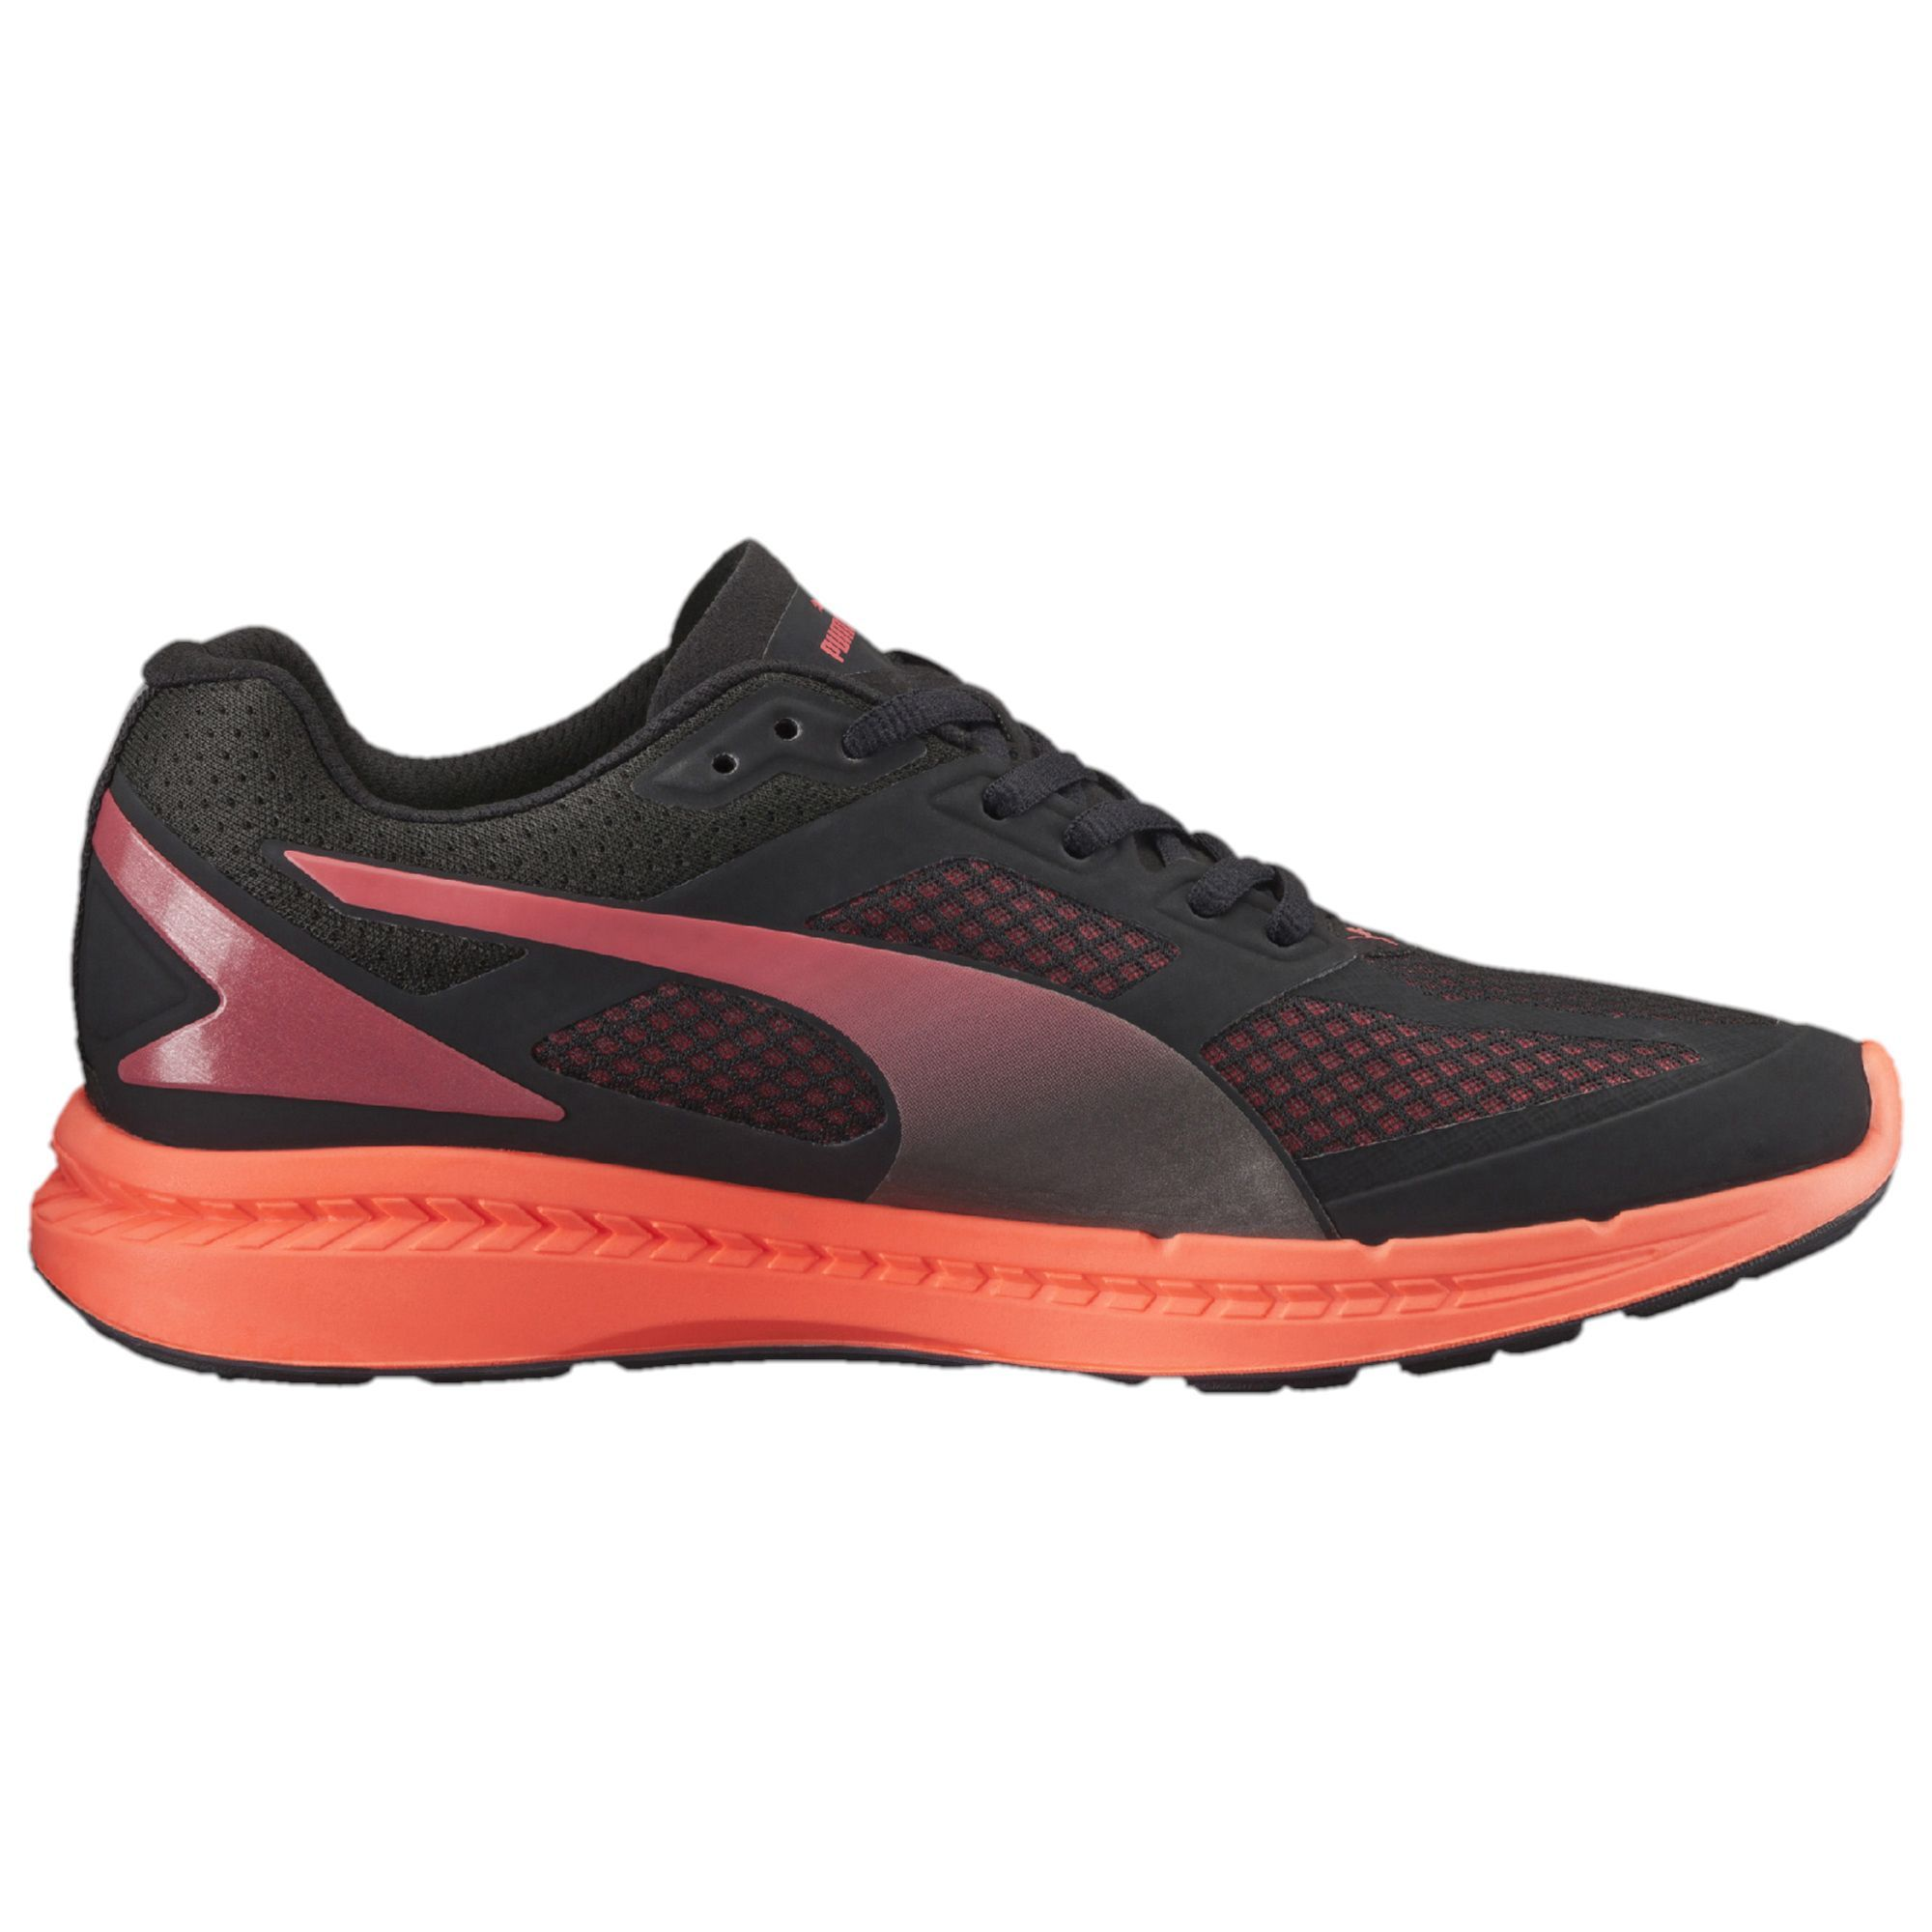 New Female Running Shoes